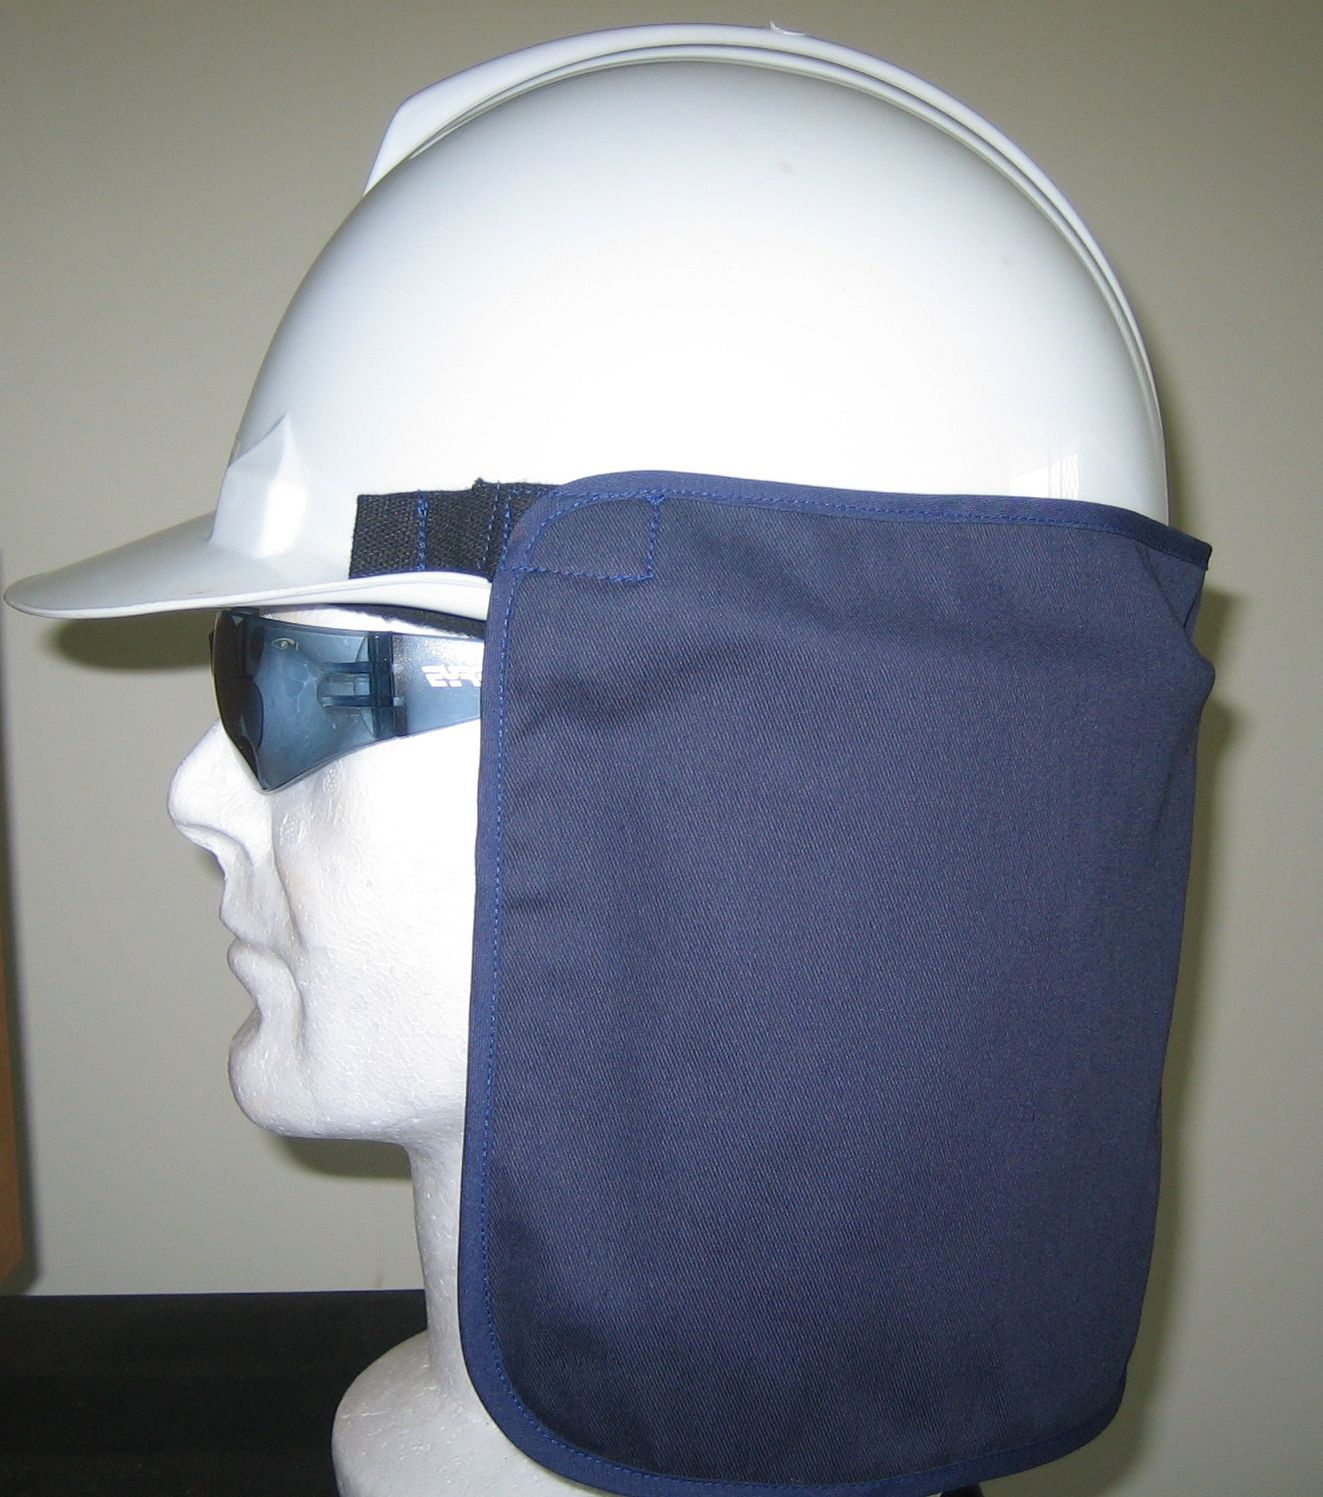 Hard Hat Neck Shades Keep The Sun Off The Back Of Your Neck When Working Great Sun Protection Durable And Fully Washable Neck Hard Hat Safety Vest